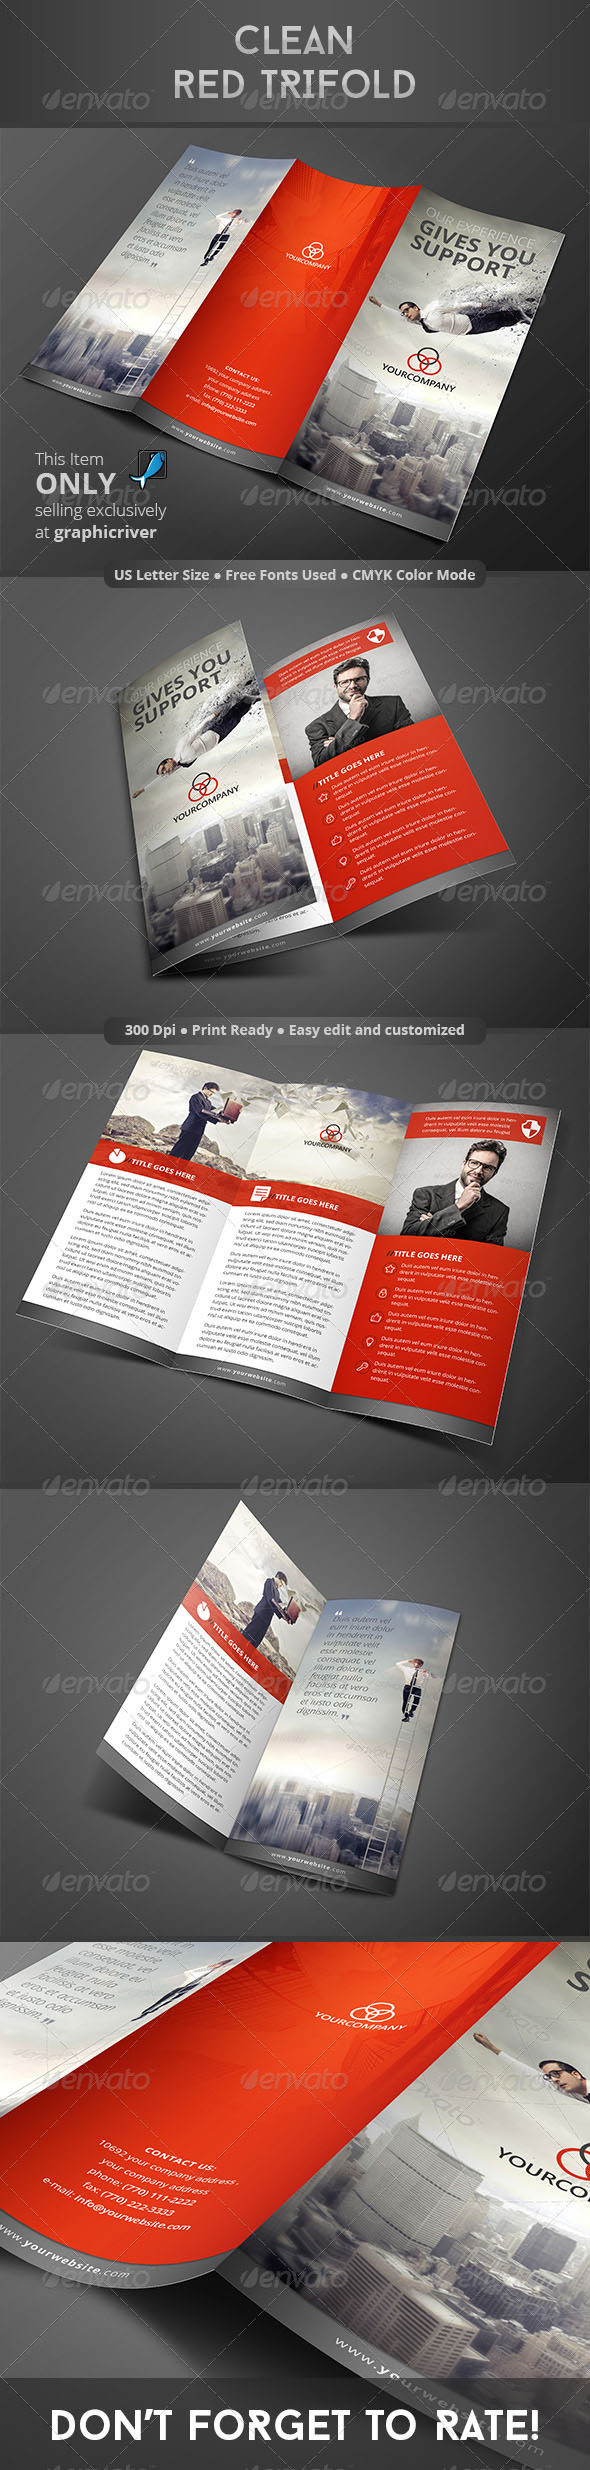 GraphicRiver Clean Red Trifold 8304638